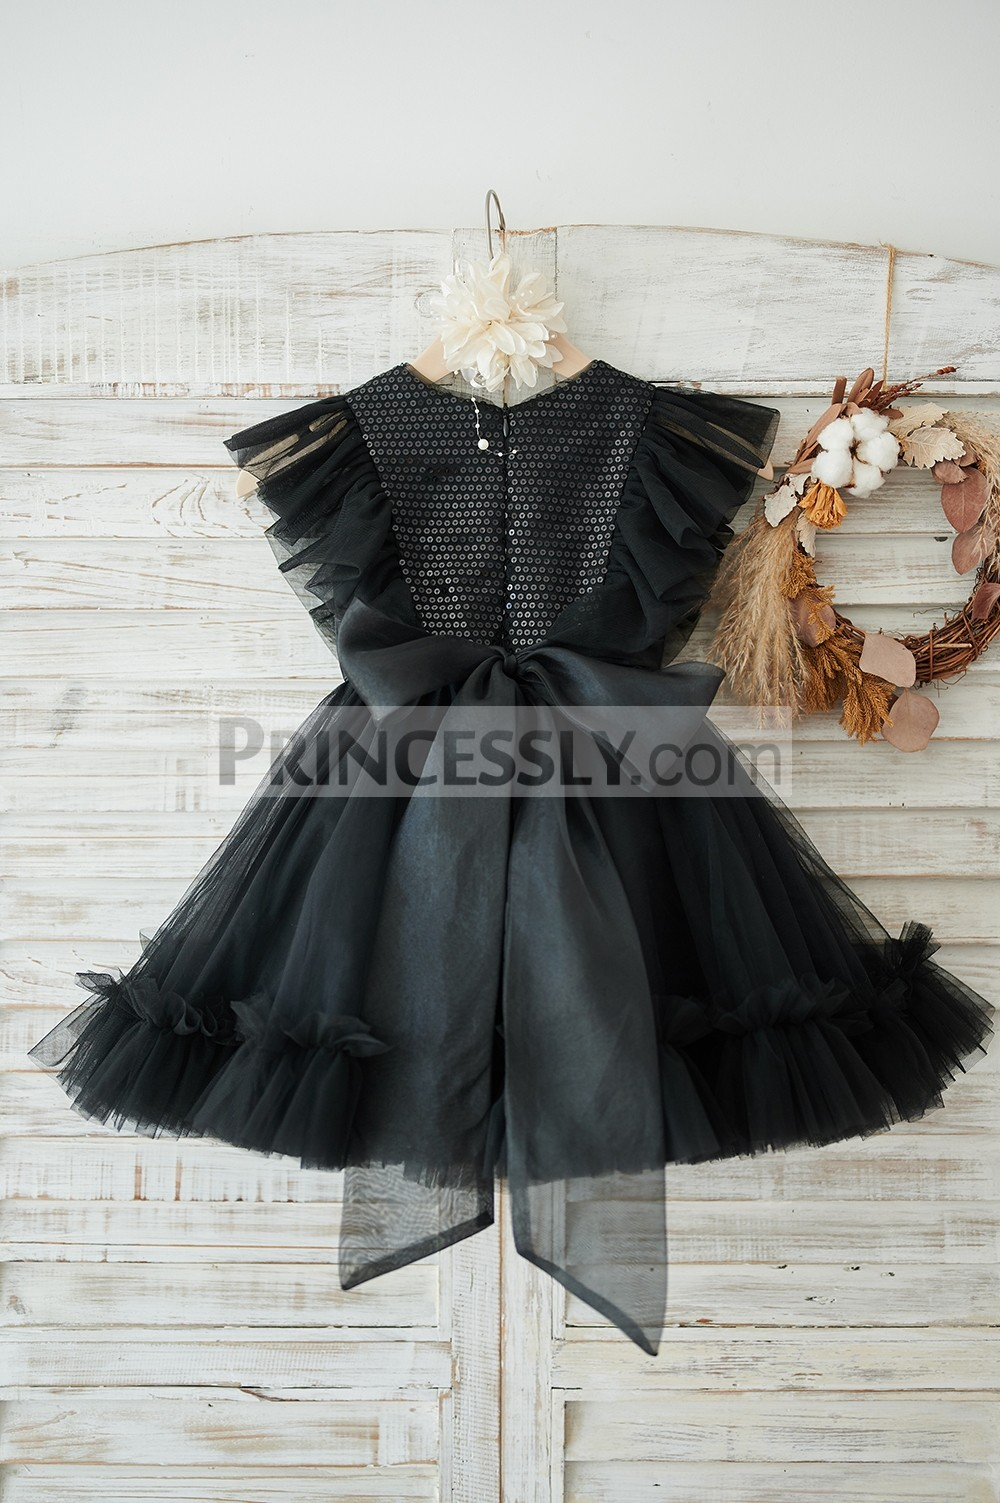 Ruffles sleeves black tulle wedding baby girl dress